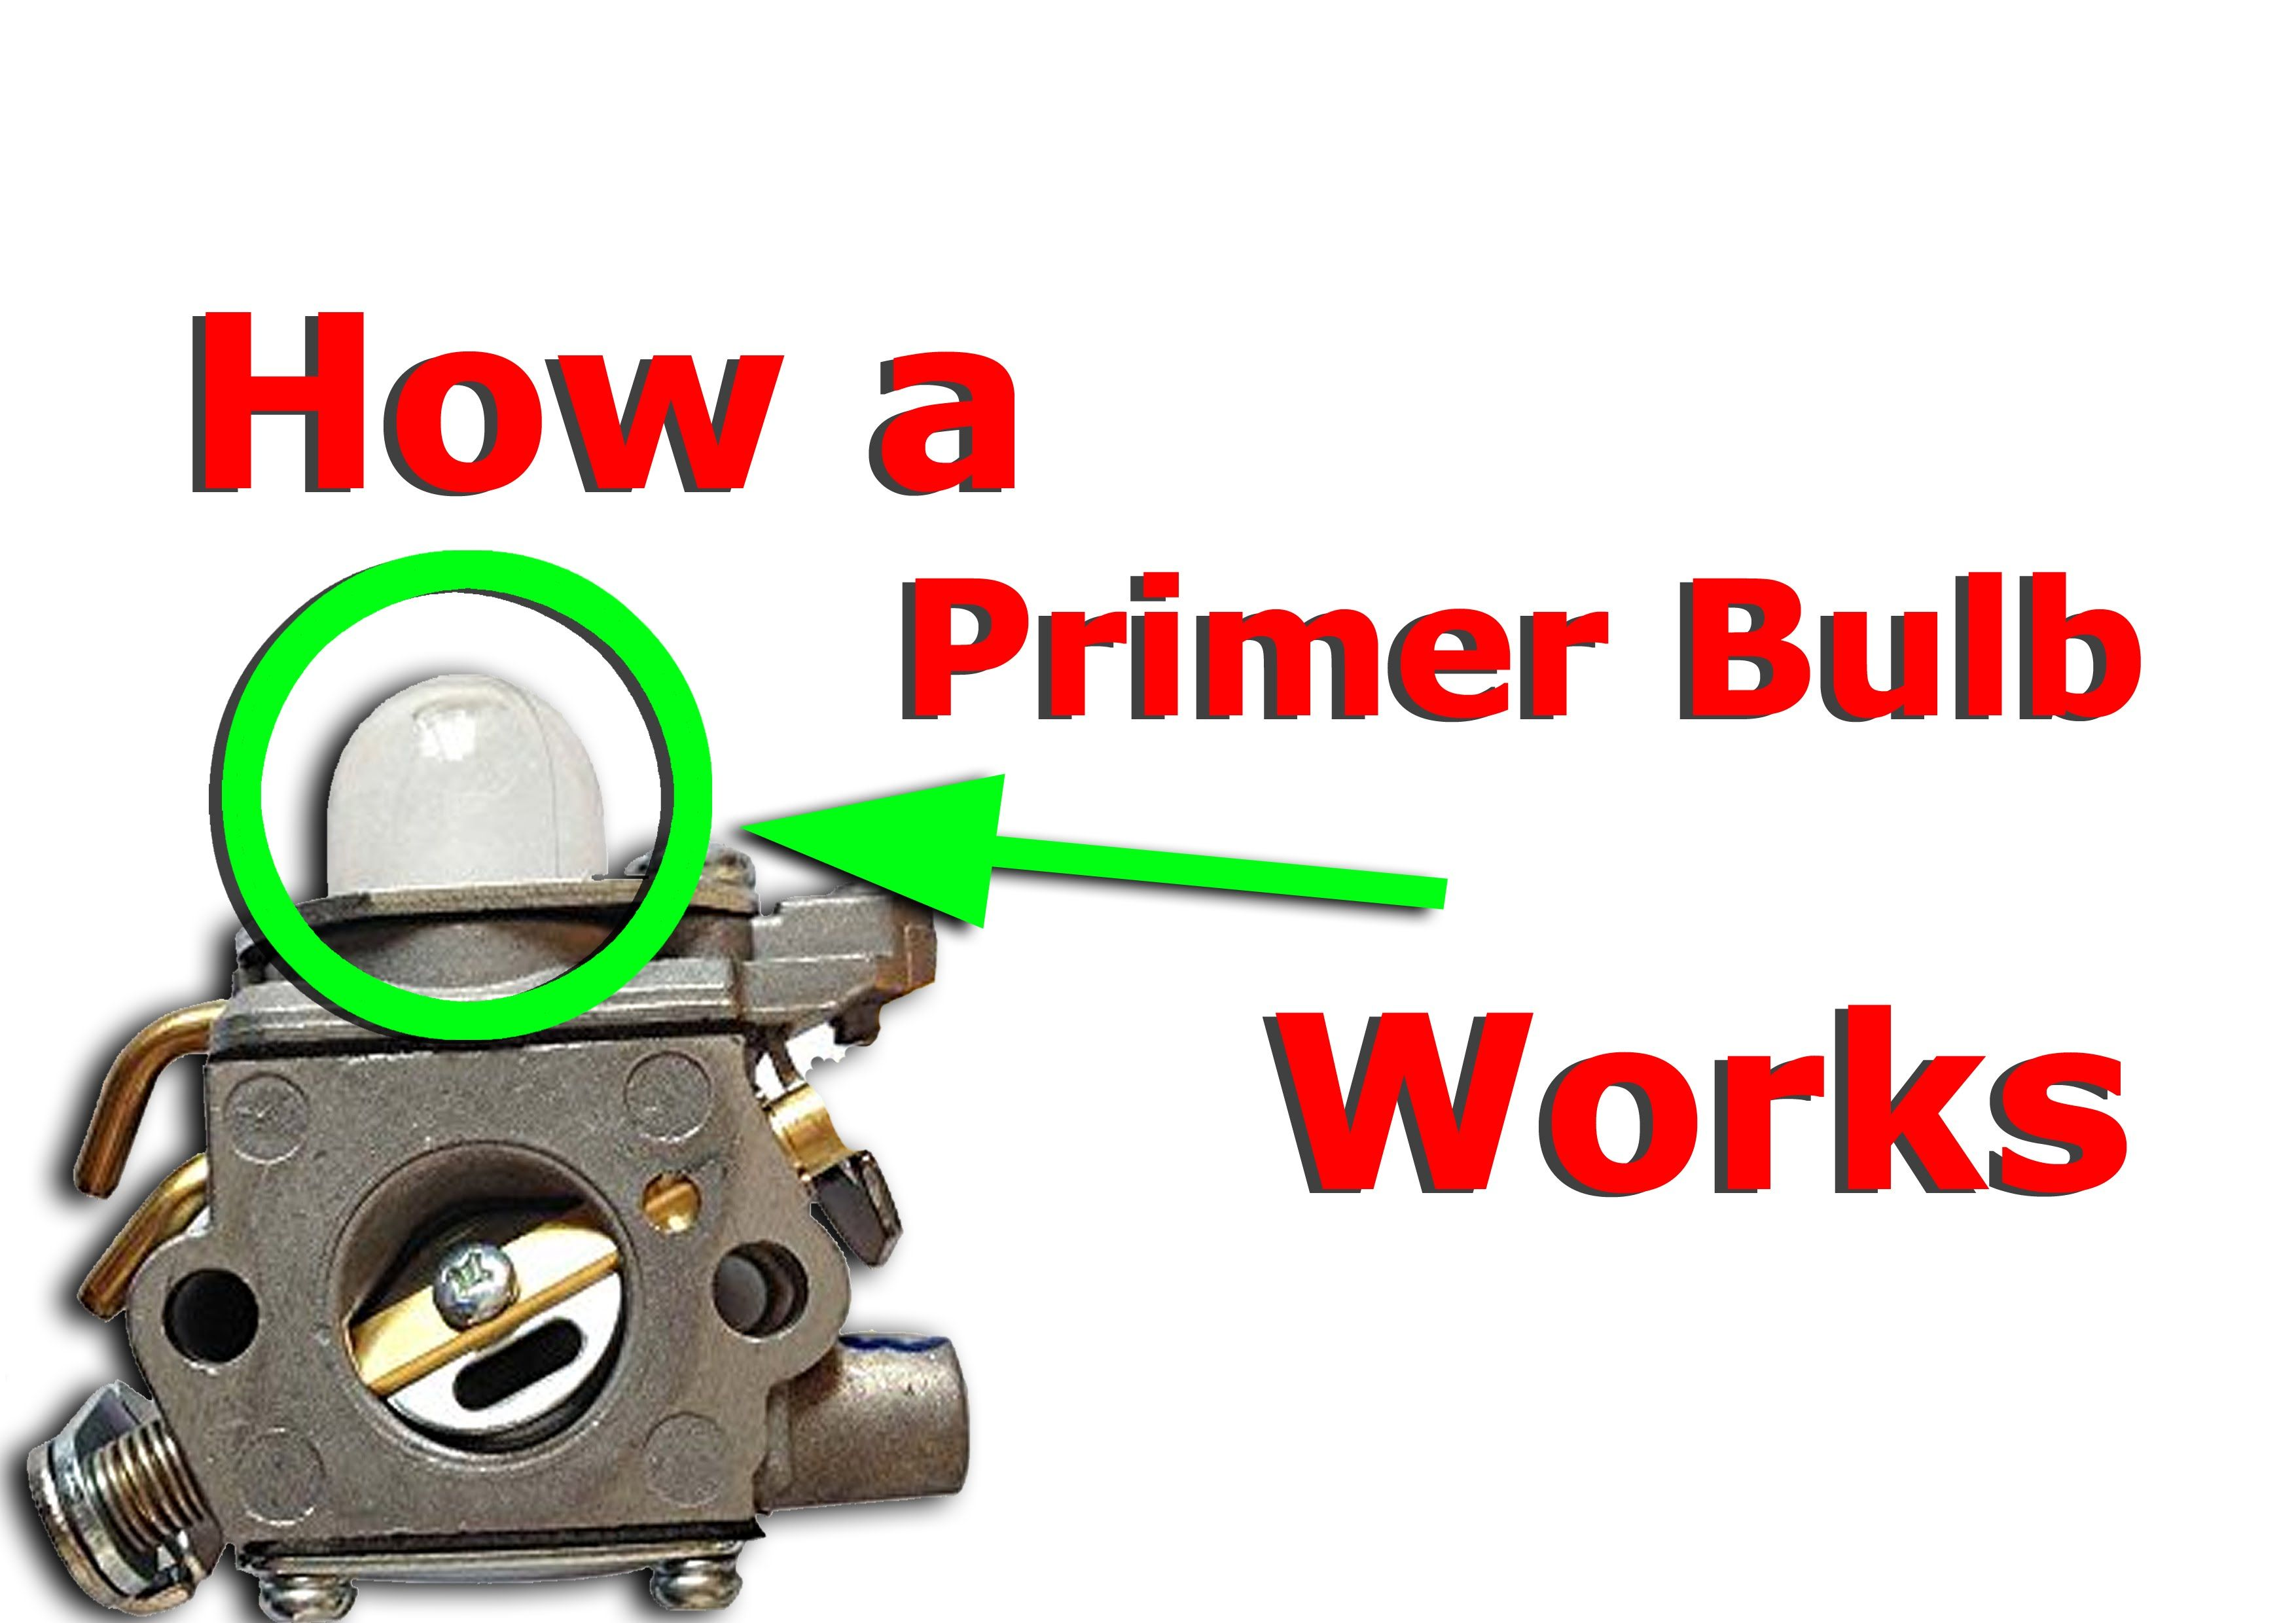 How A Primer Bulb Works Easily Explained Two Stroke Cycle Featherlite Weedeater Fuel Line Diagram Weed Eater Get Replacement Lines Carburettor He